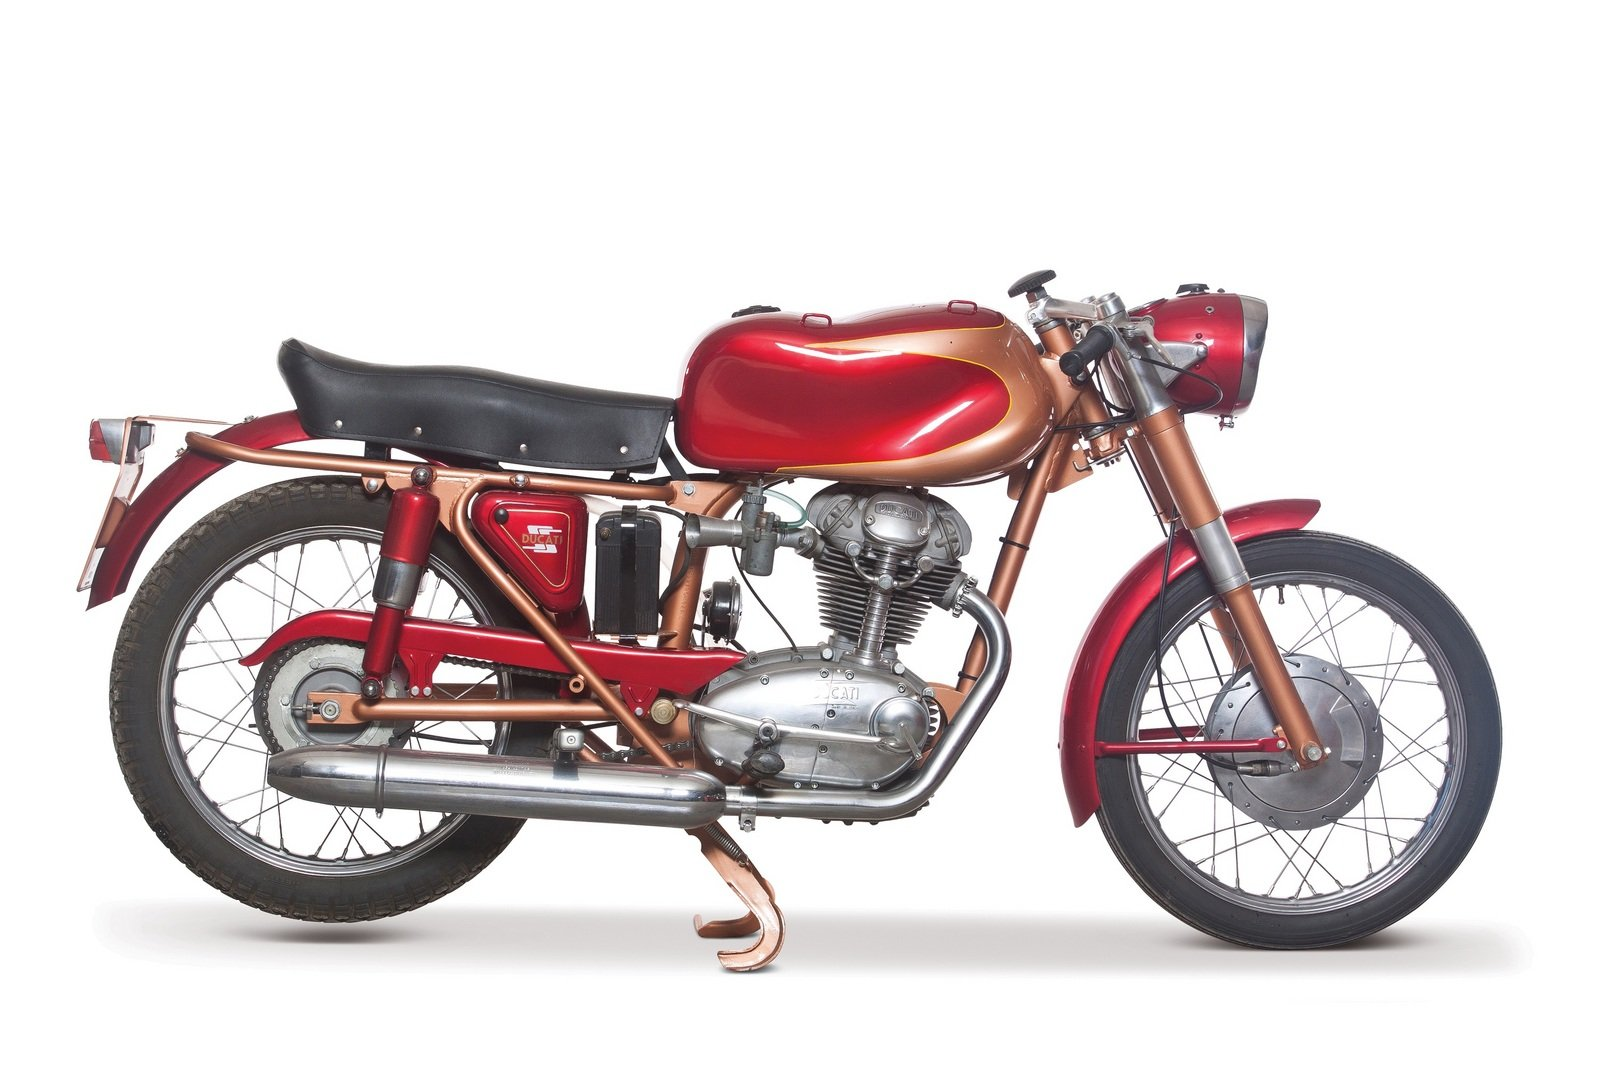 1958 Ducati 175 Sport Picture 453390 Motorcycle Review